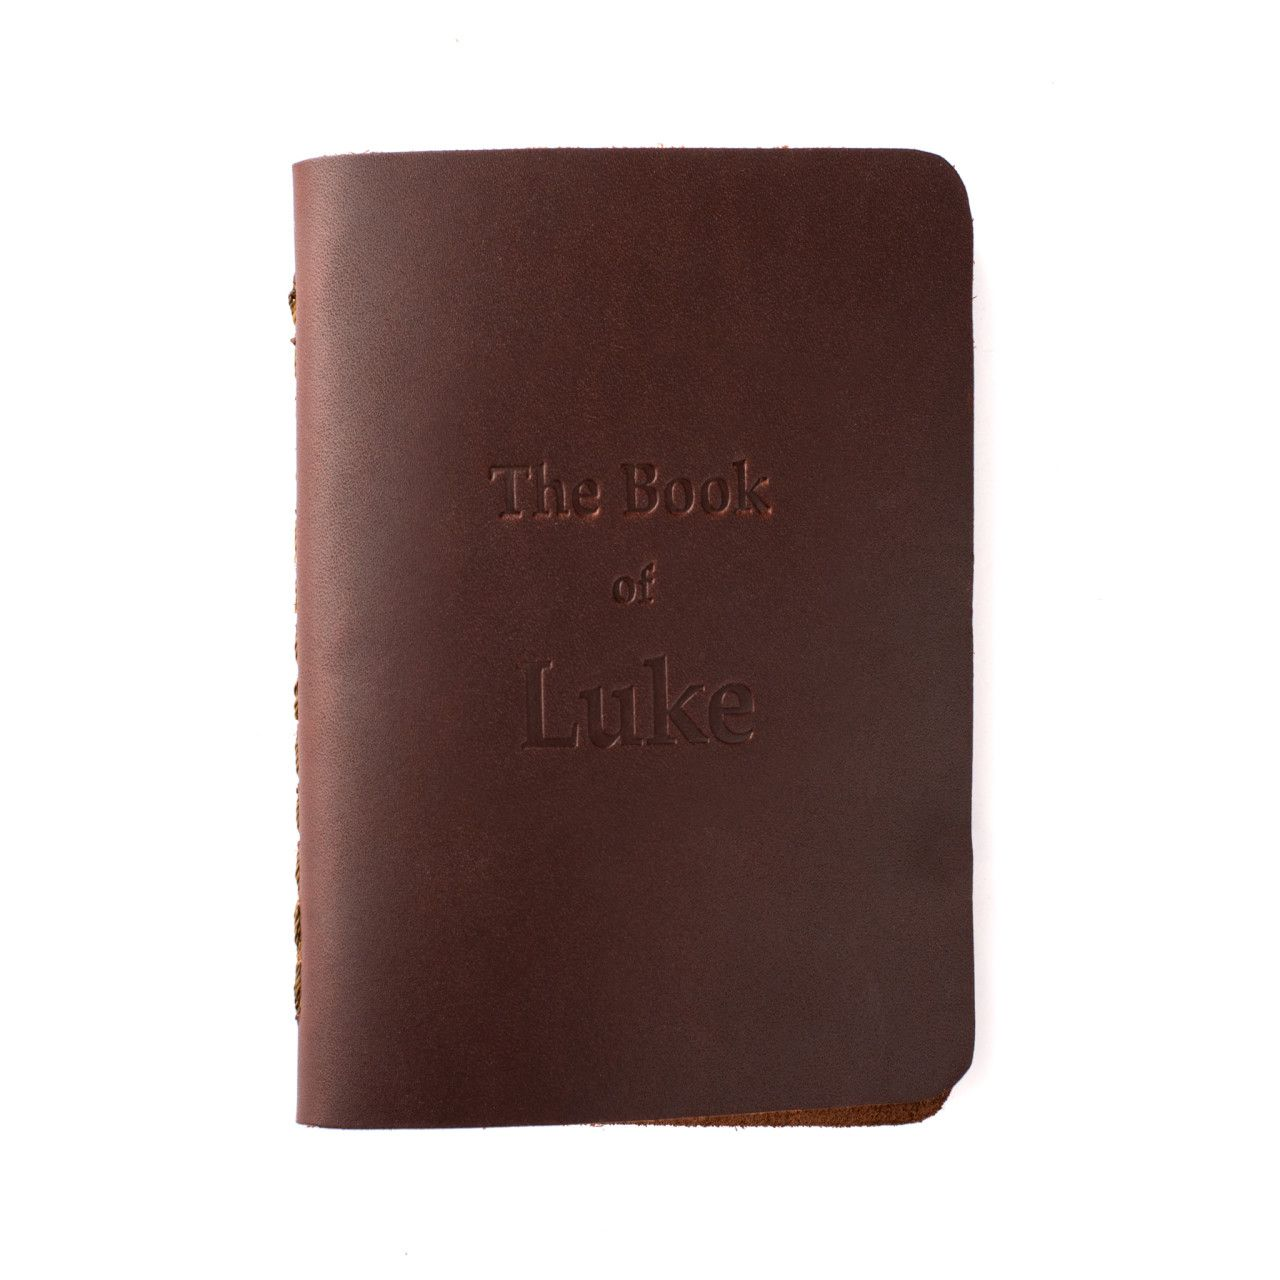 leather book of luke in chestnut leather